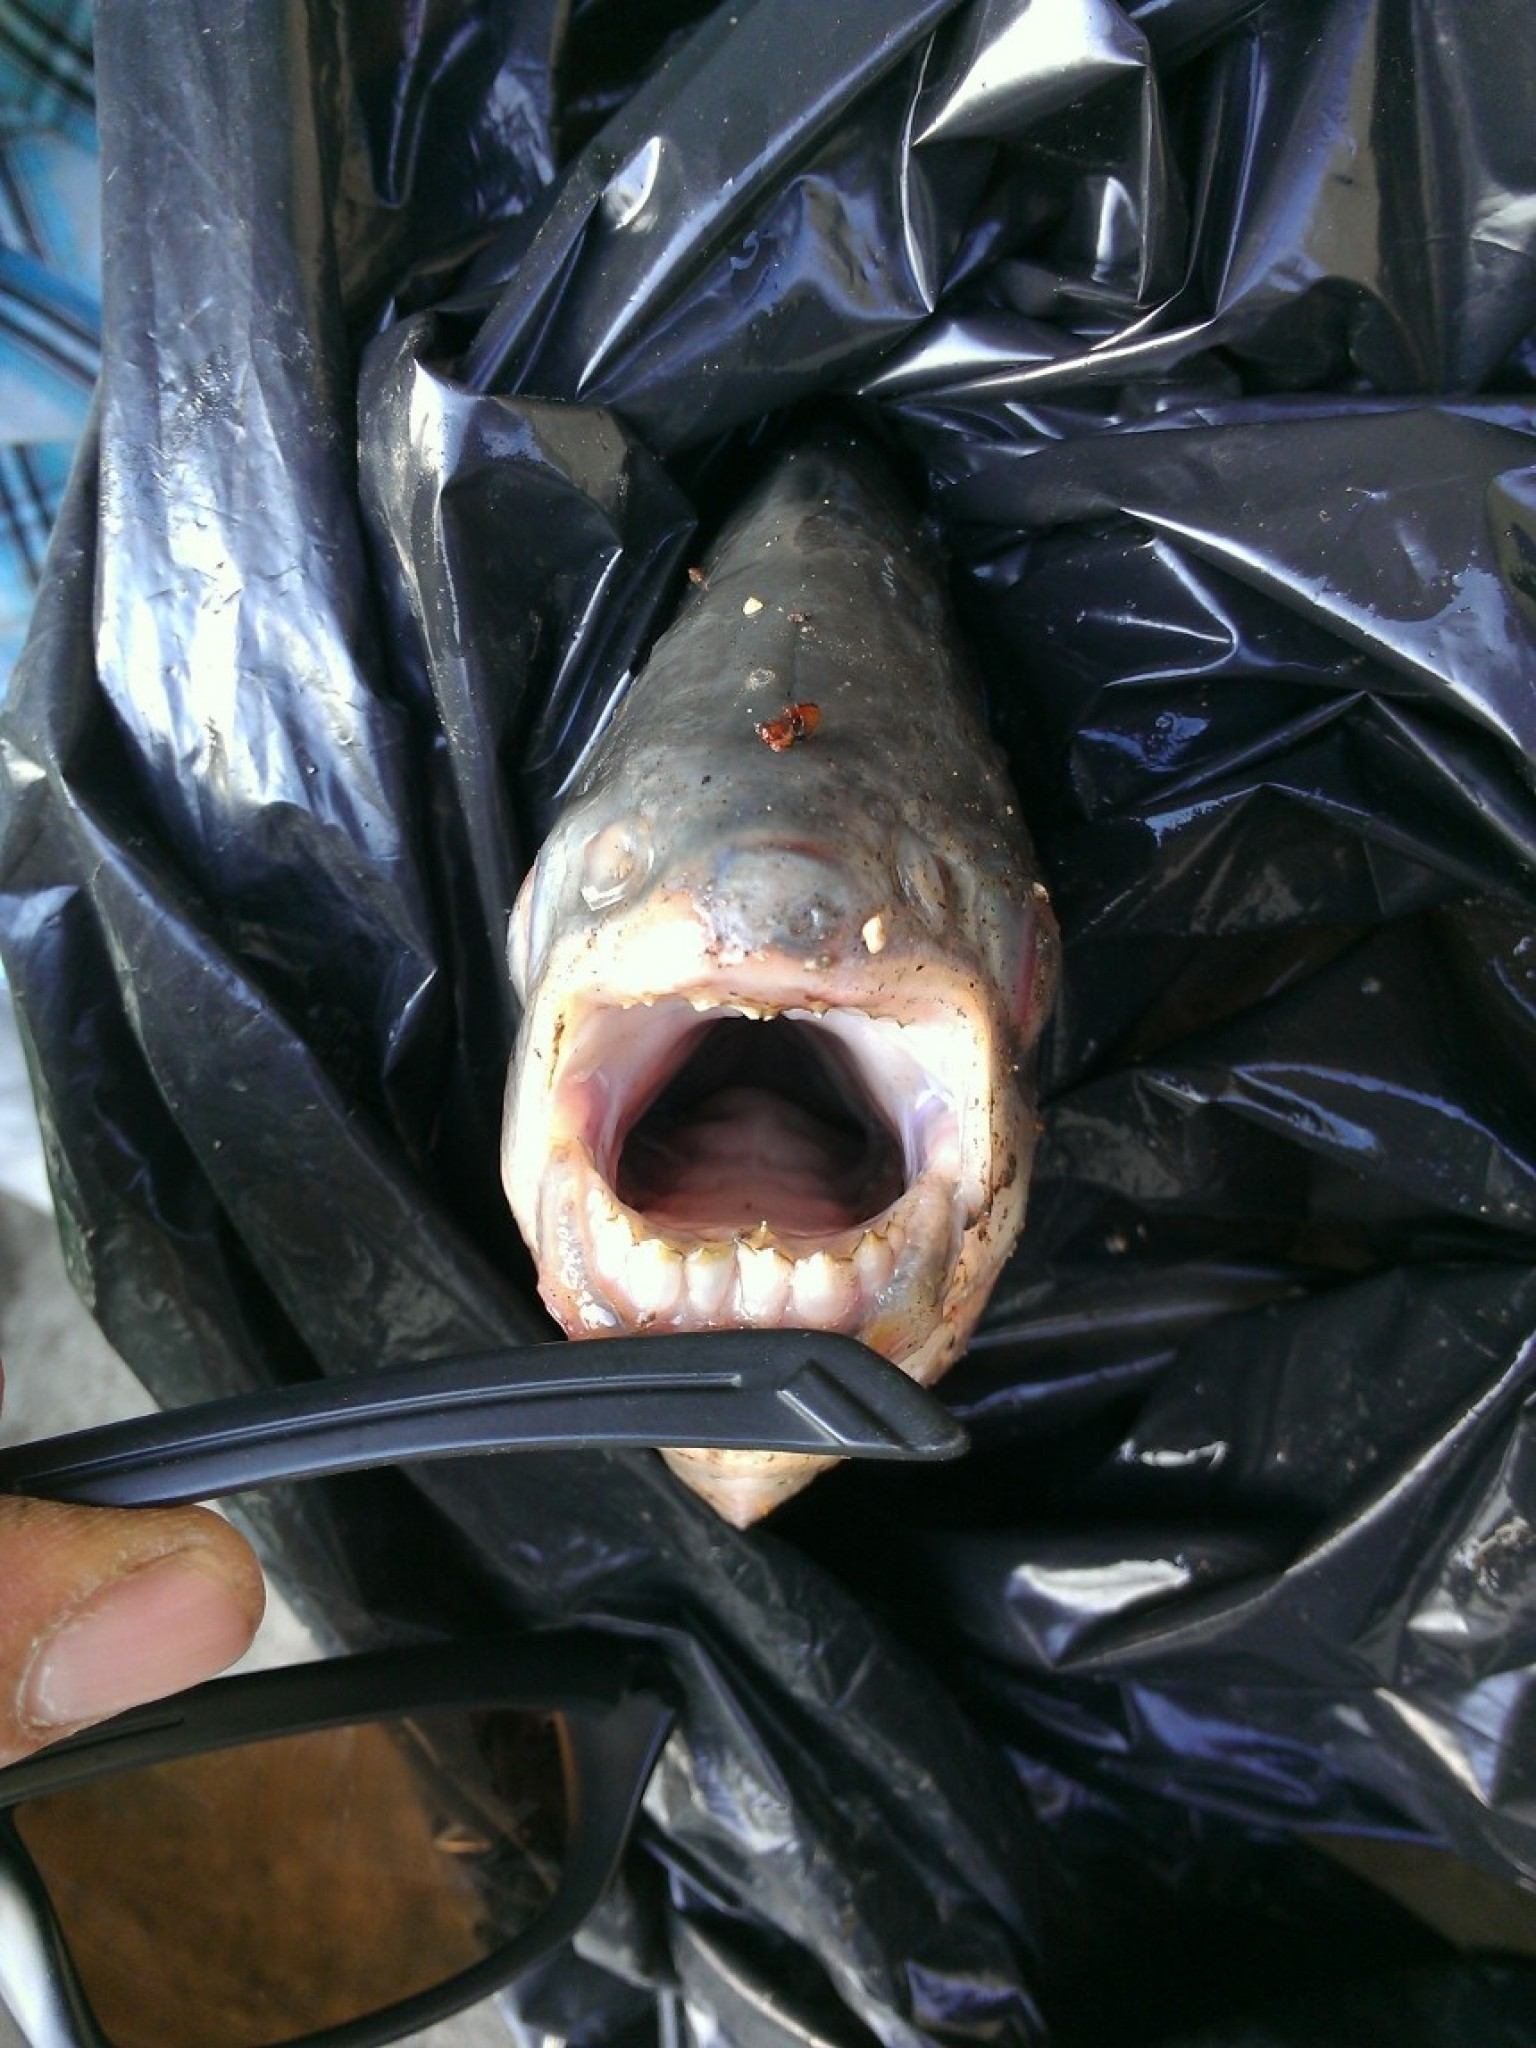 Pacu testicle biting fish caught near paris in the seine for Where are the fish biting near me